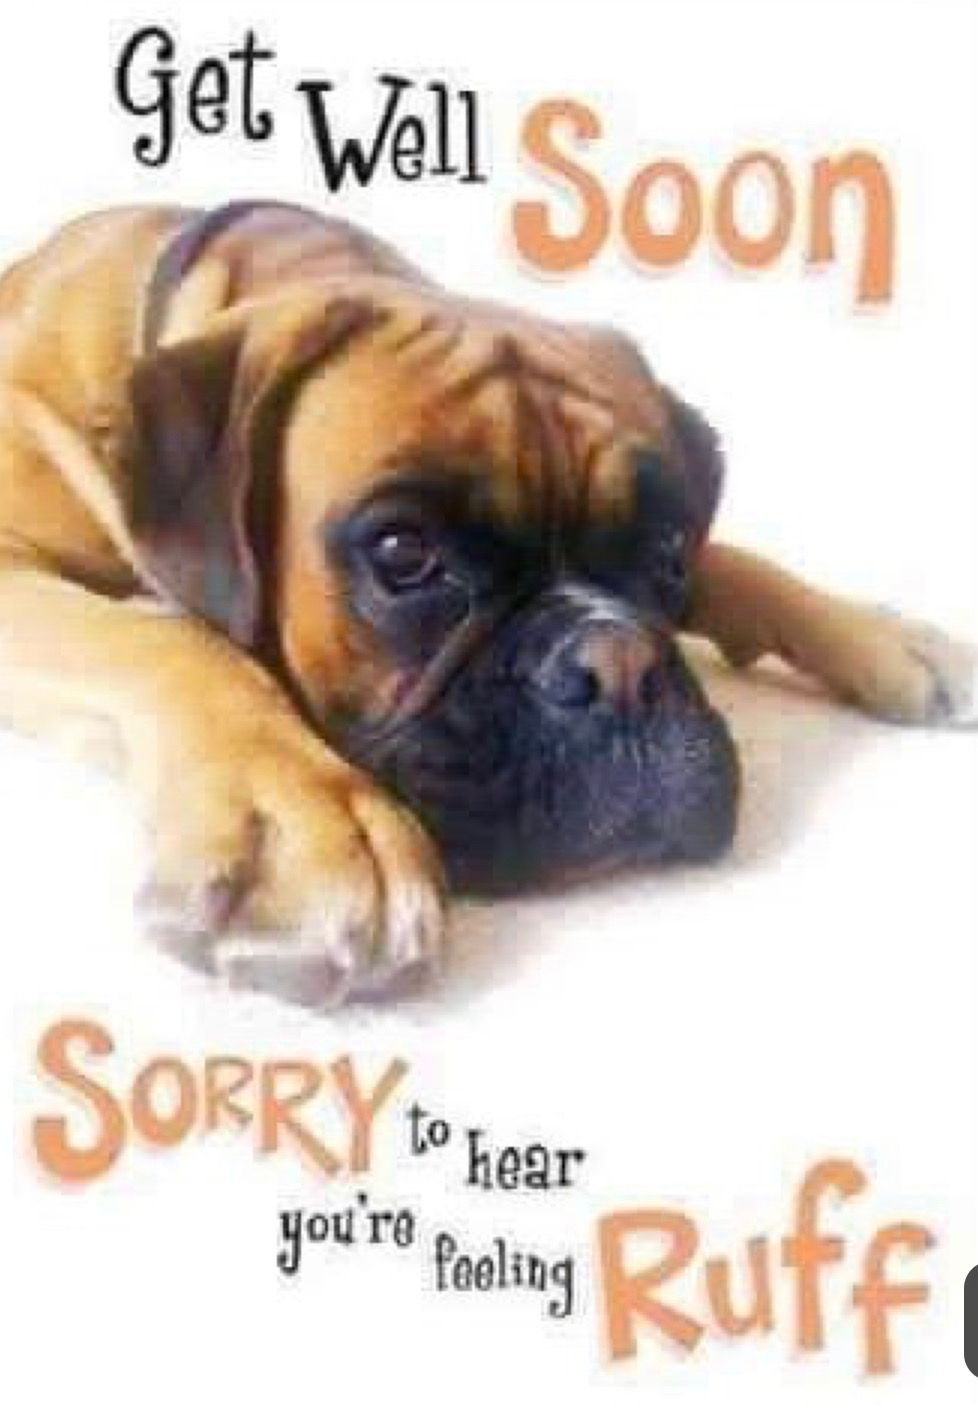 Pin By D Brown On Get Well Soon Get Well Quotes Get Well Soon Quotes Get Well Soon